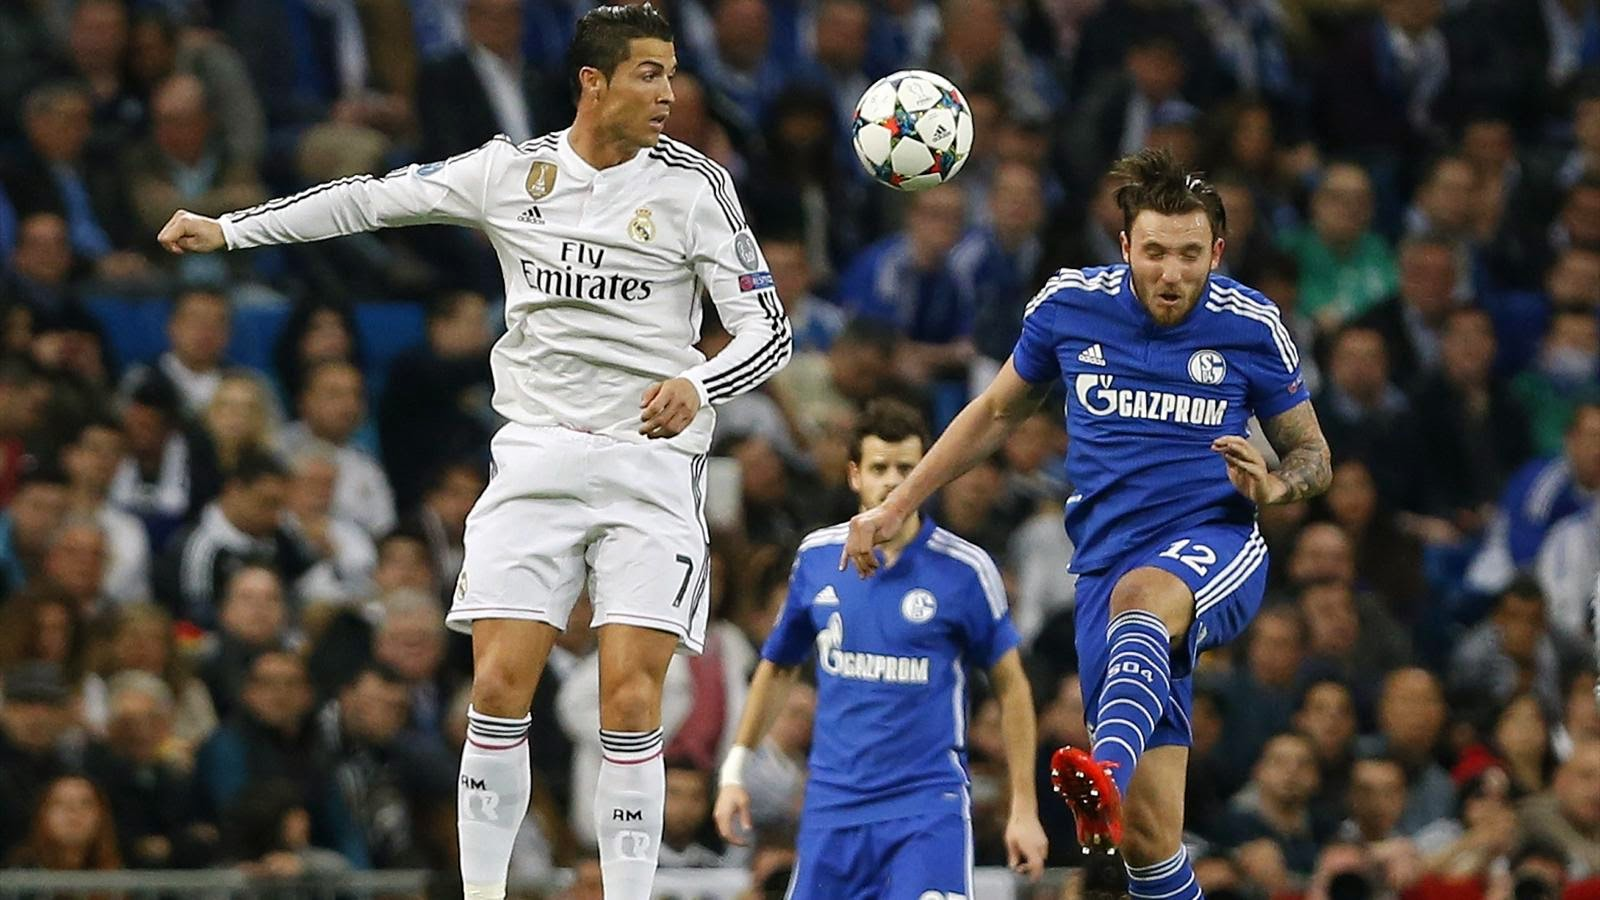 #UEFAResults - Real Madrid 3-4 Schalke (Agg 5-4)